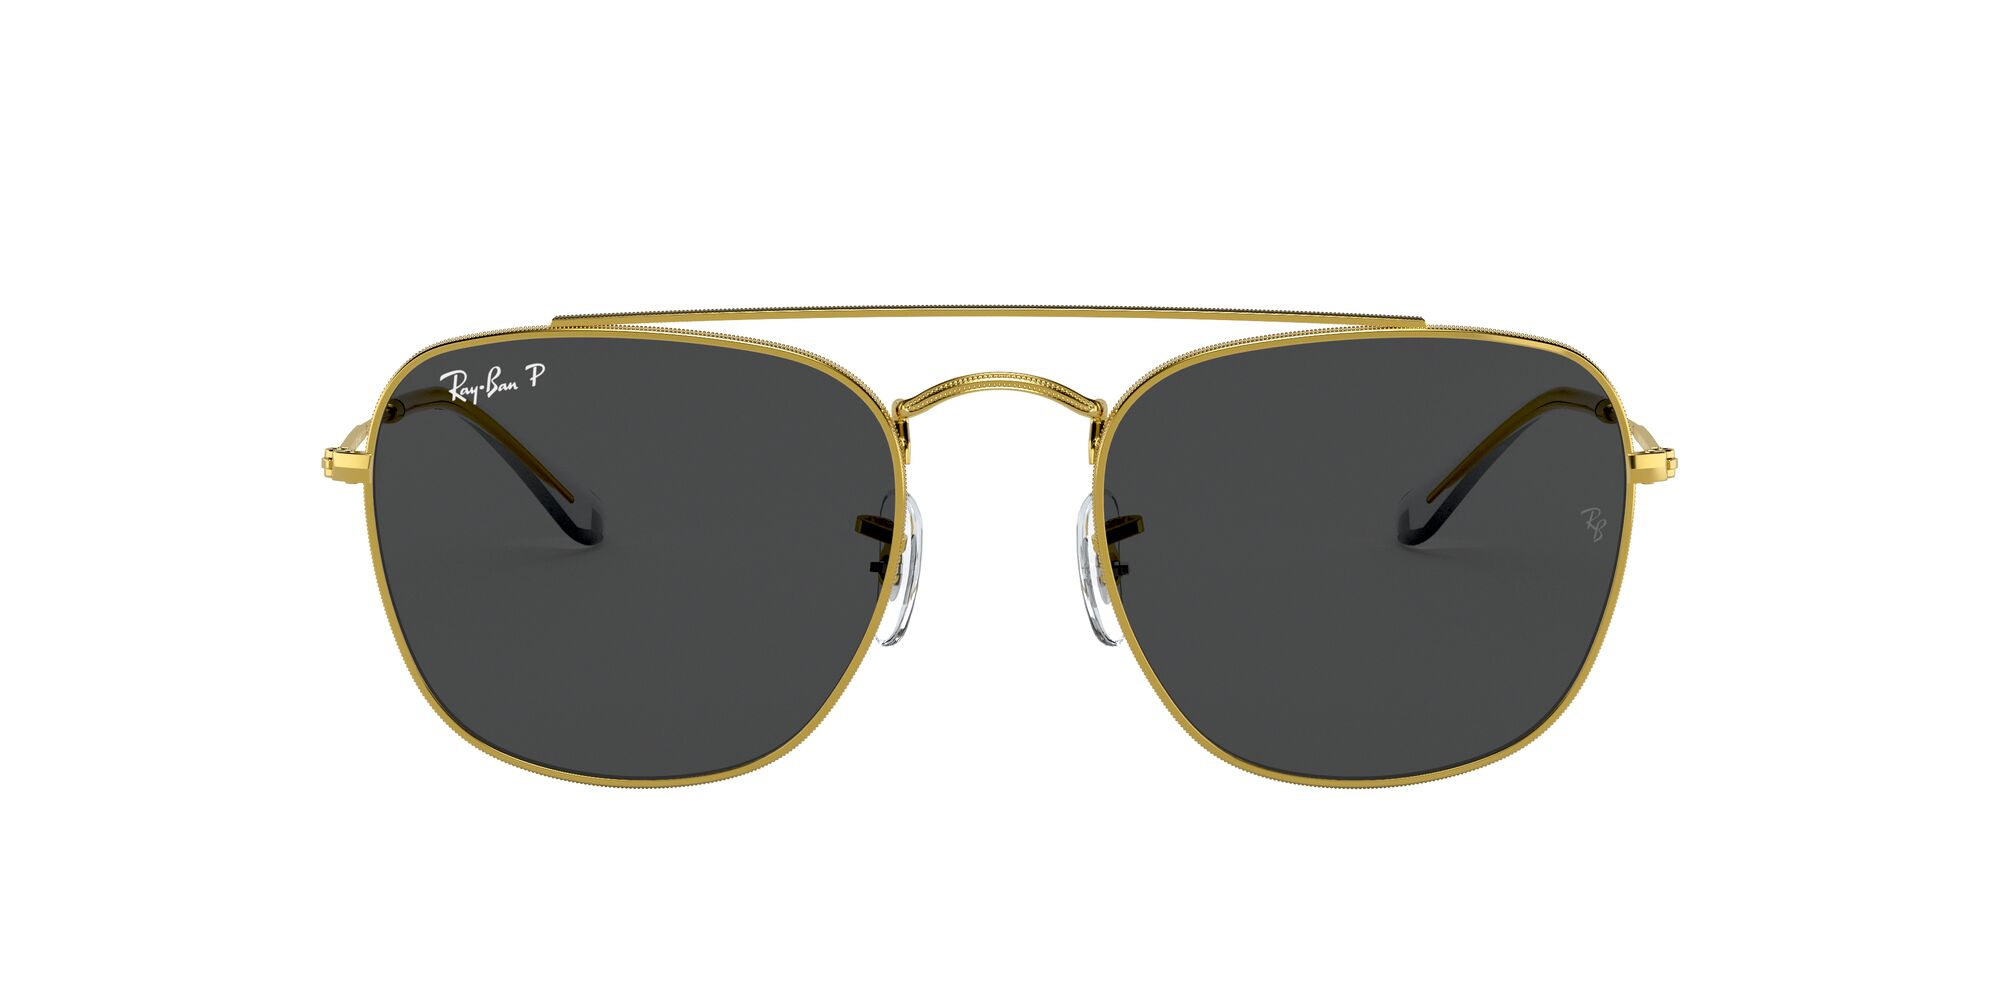 Front Ray-Ban Ray-Ban 0RB3557 919648 51/20 Goud/Grijs